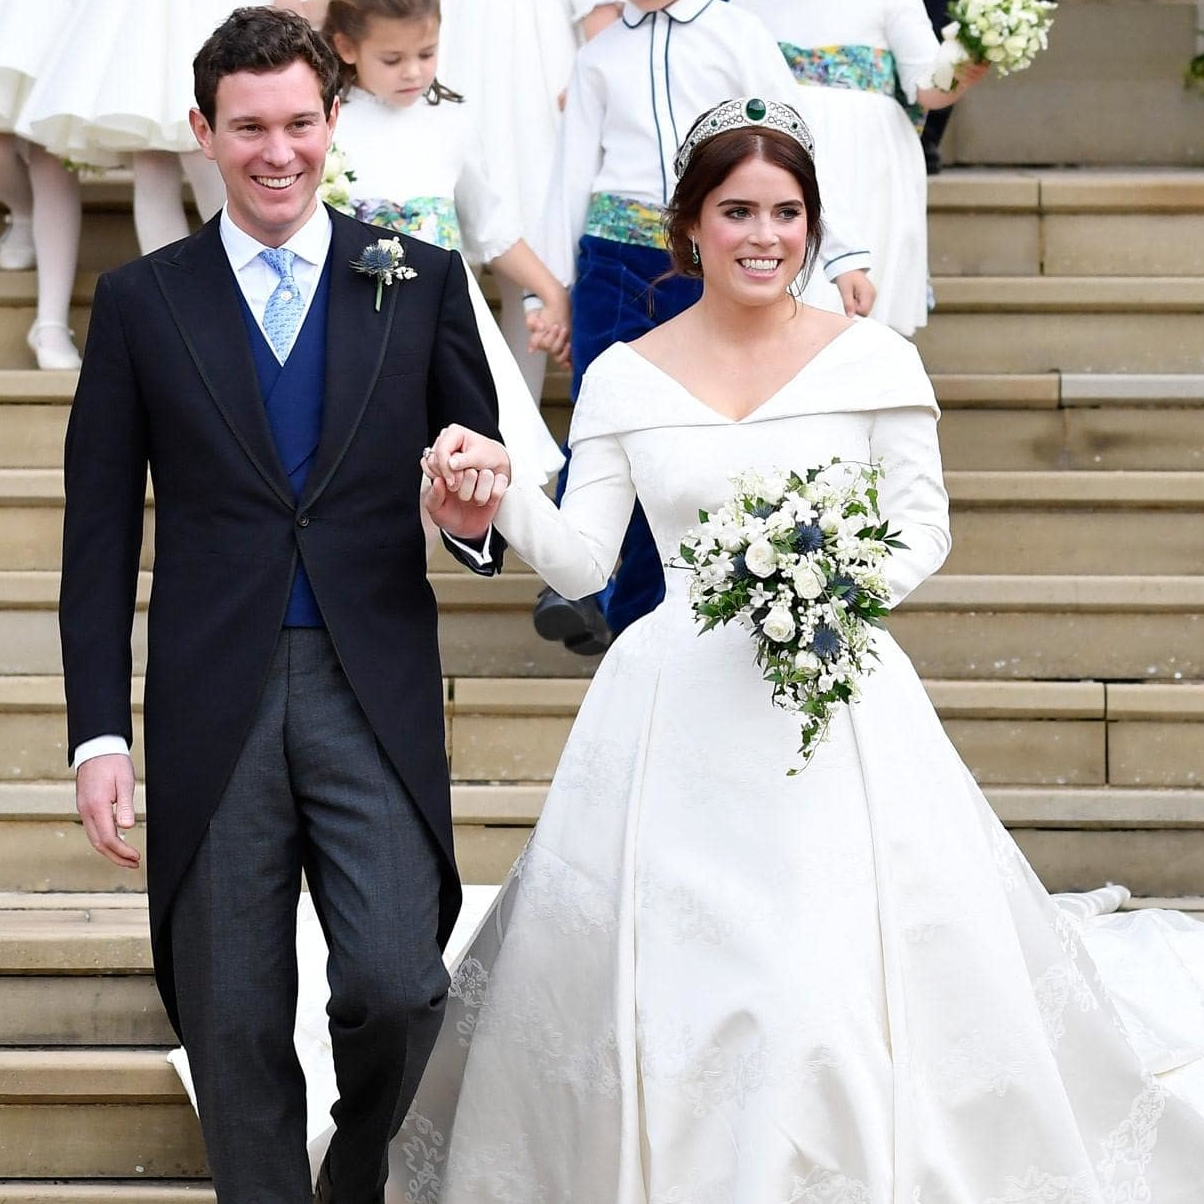 Boda real de la princesa Eugenia